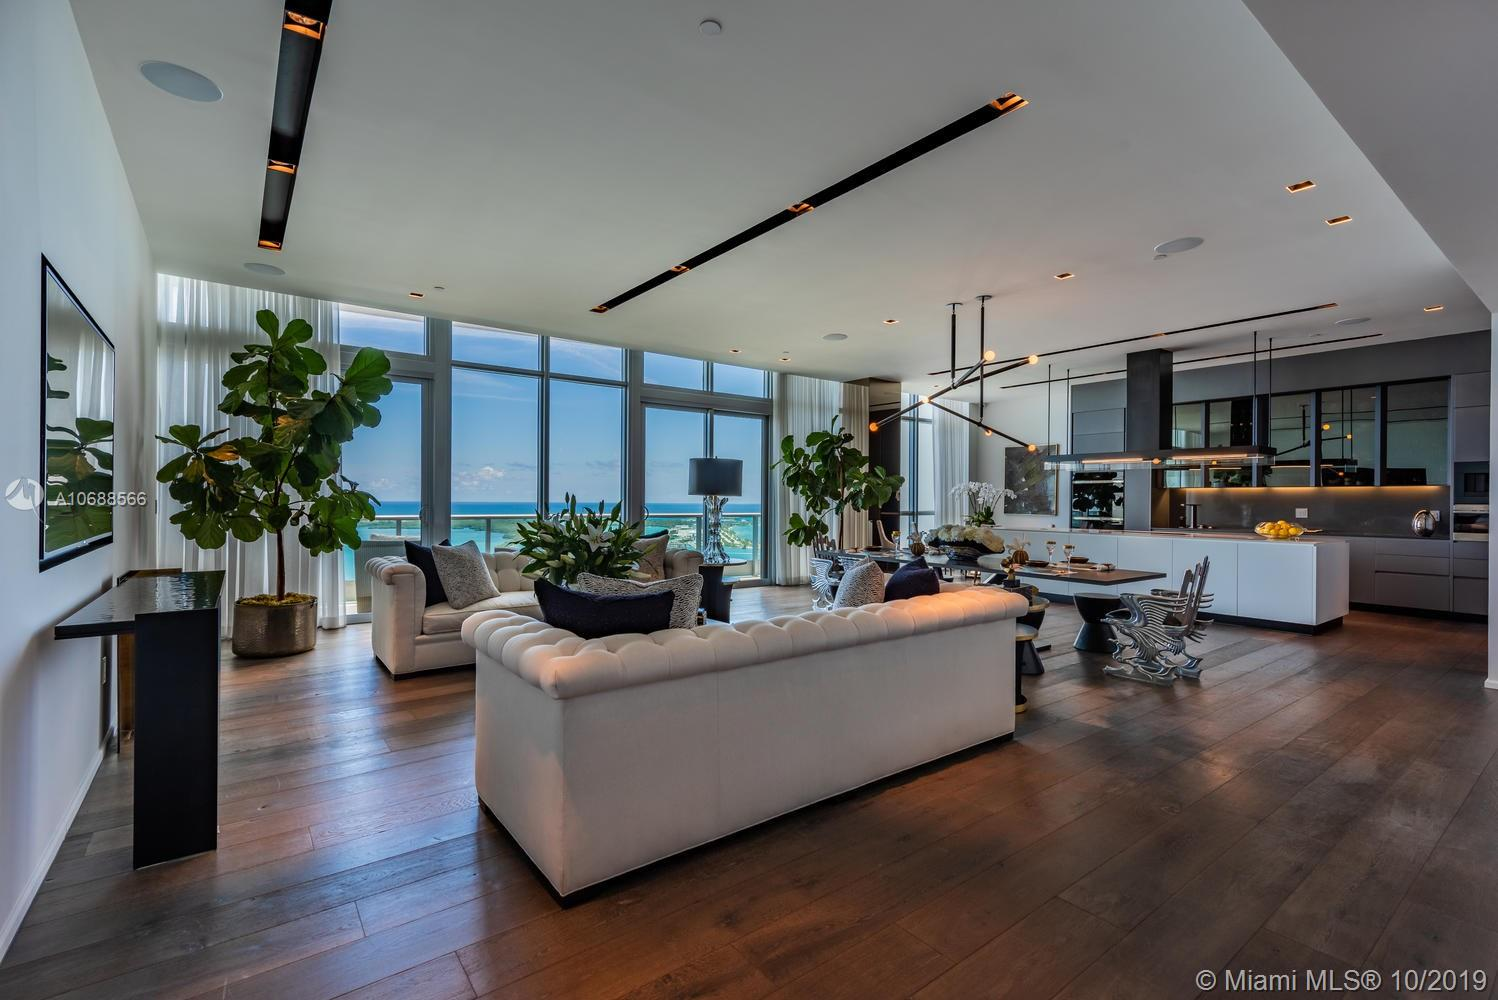 1331 Brickell bay dr-PH4707 miami-fl-33131-a10688566-Pic02